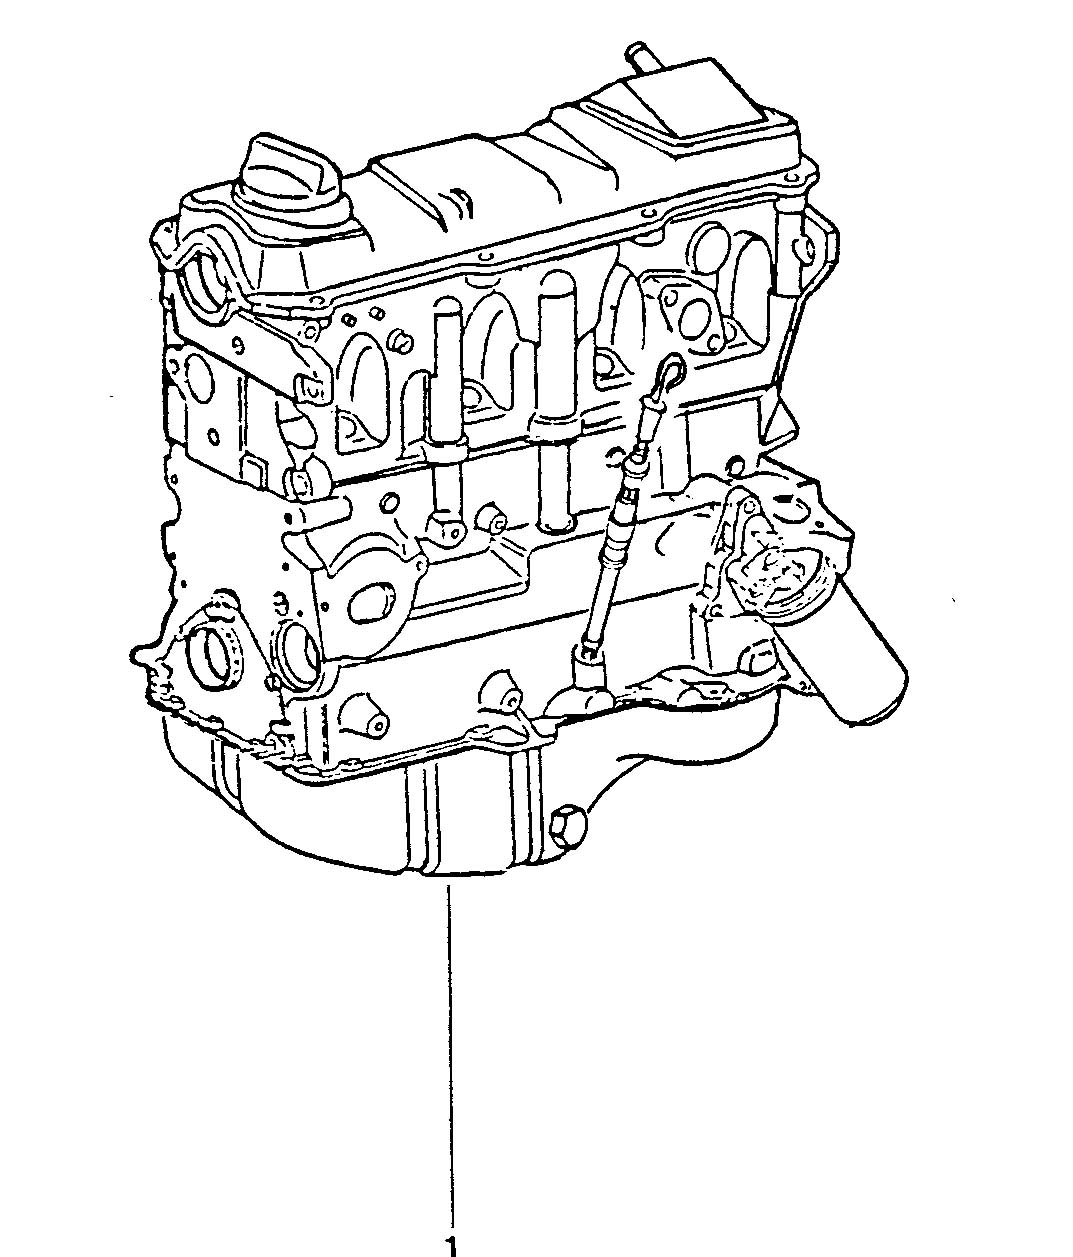 B3 9 Fuel System Parts Diagram, B3, Free Engine Image For